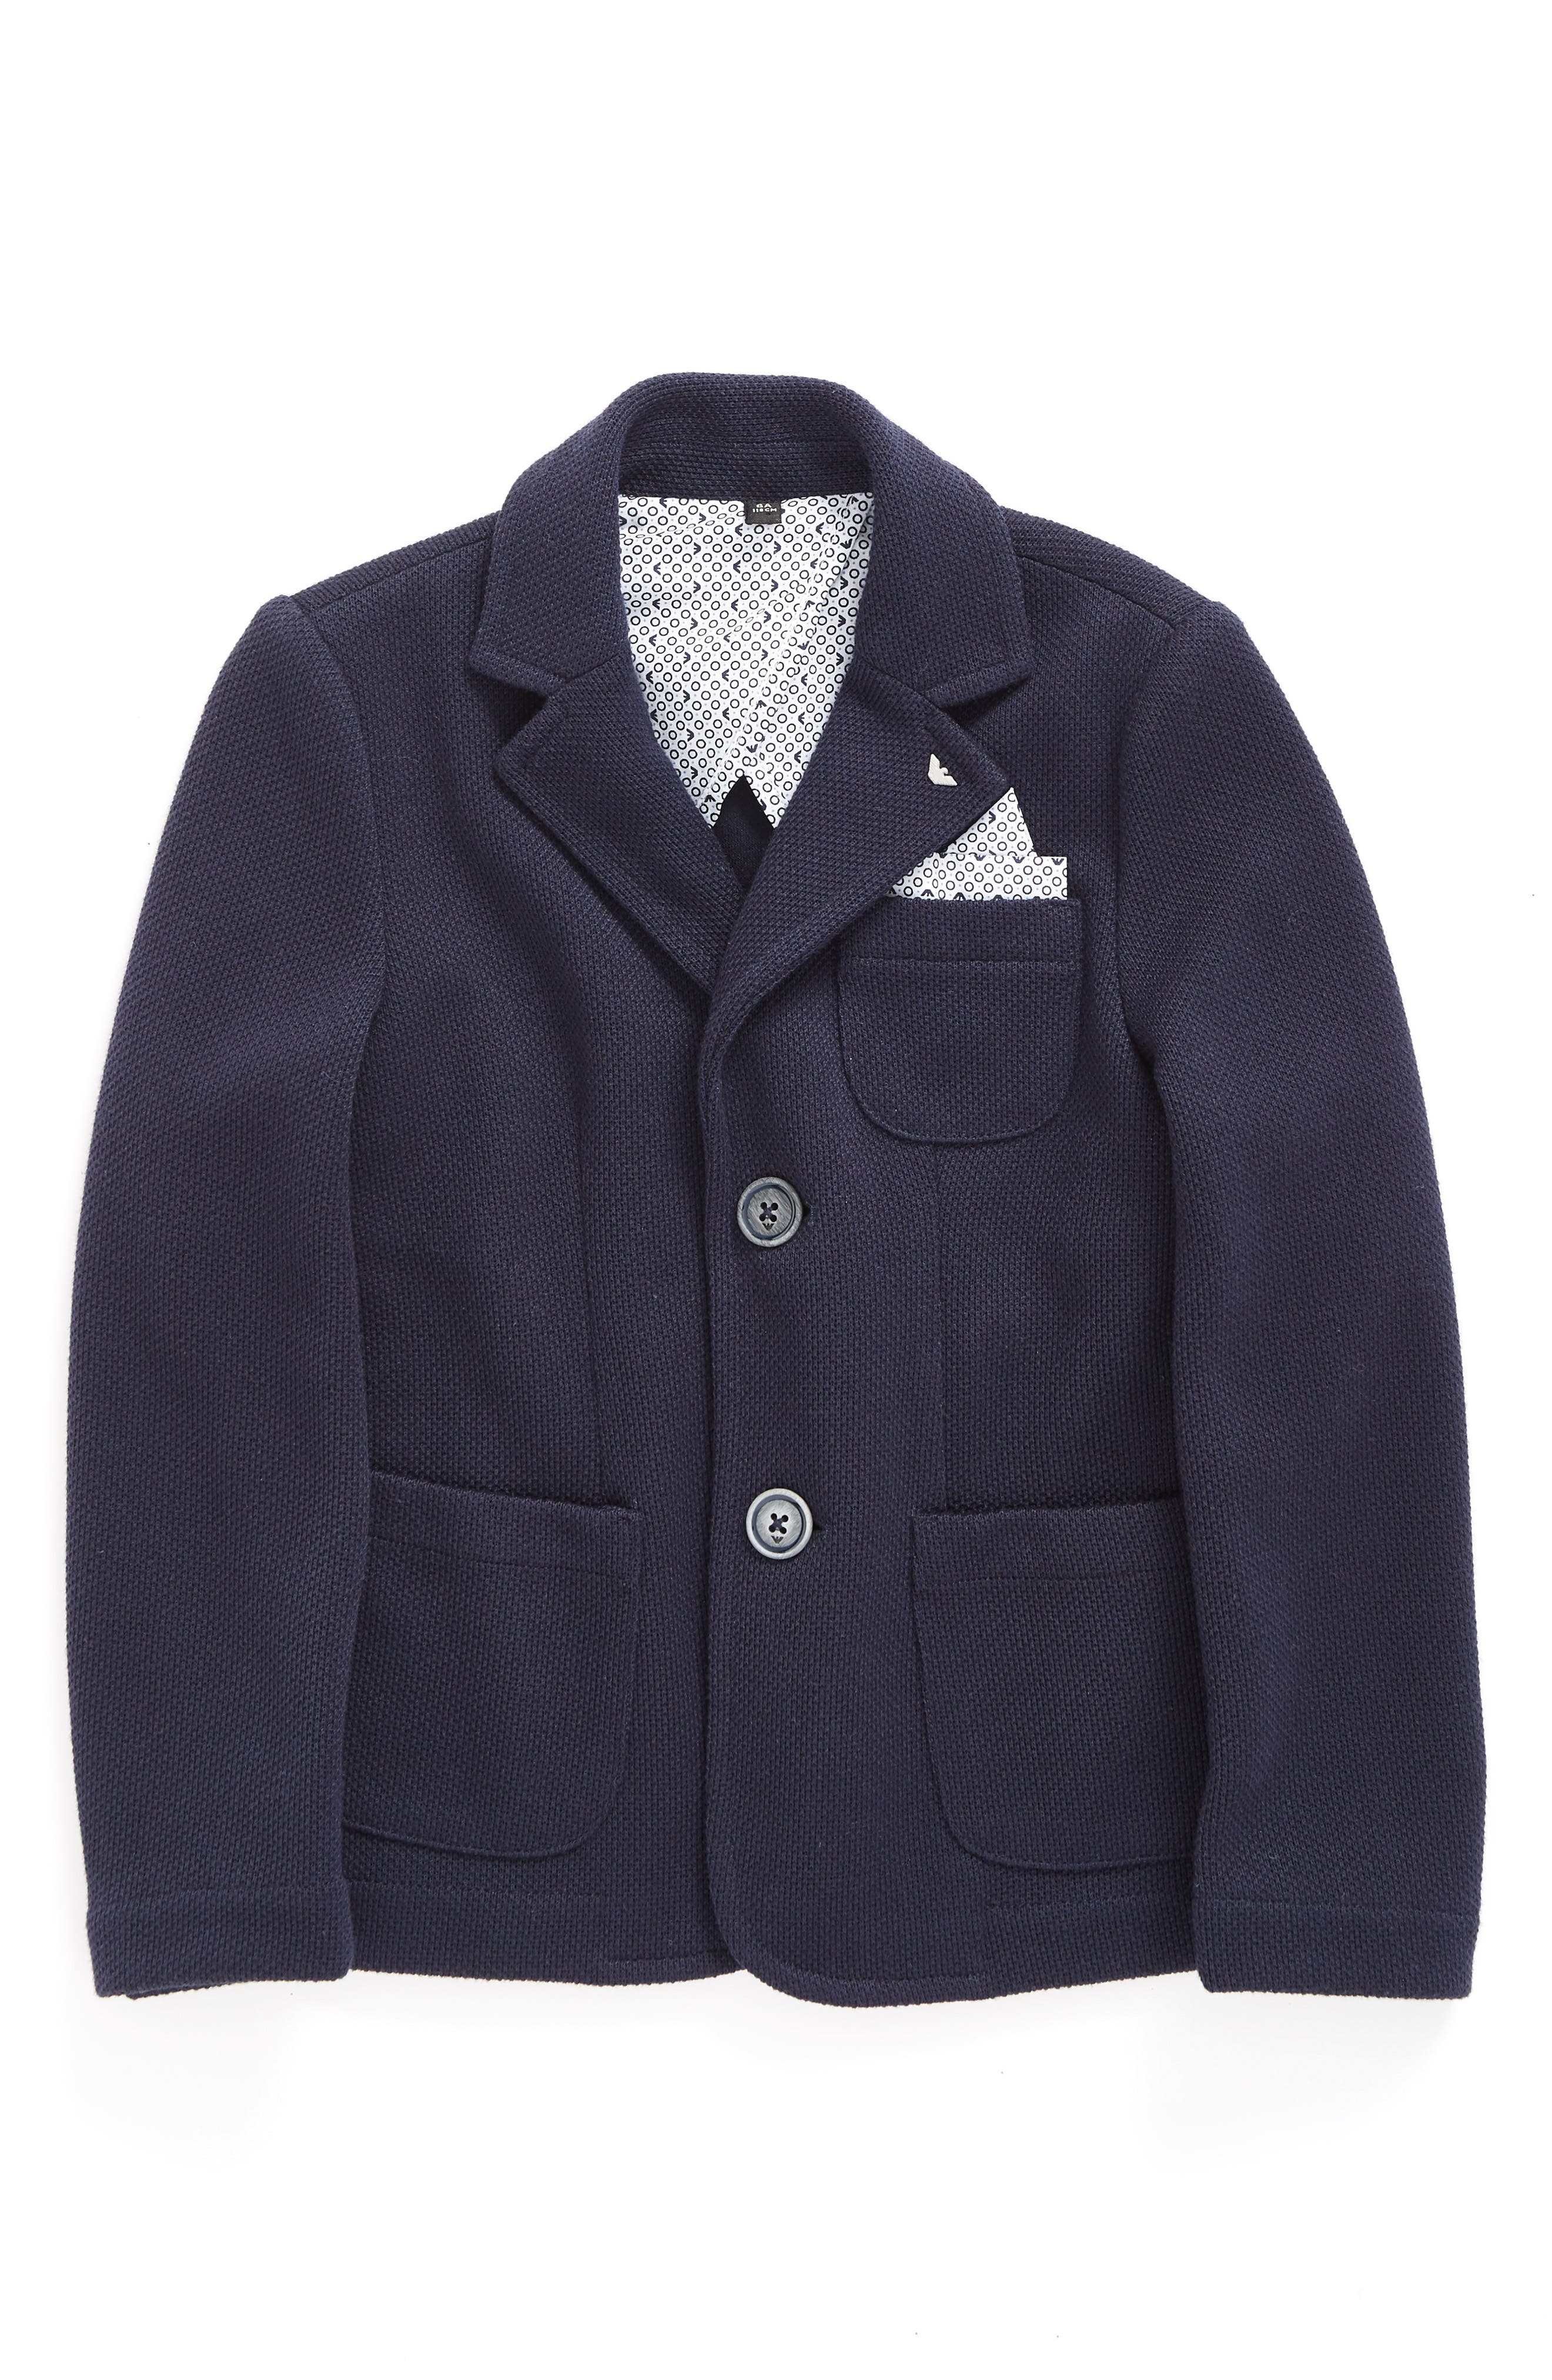 ARMANI JUNIOR Knit Blazer with Pocket Square